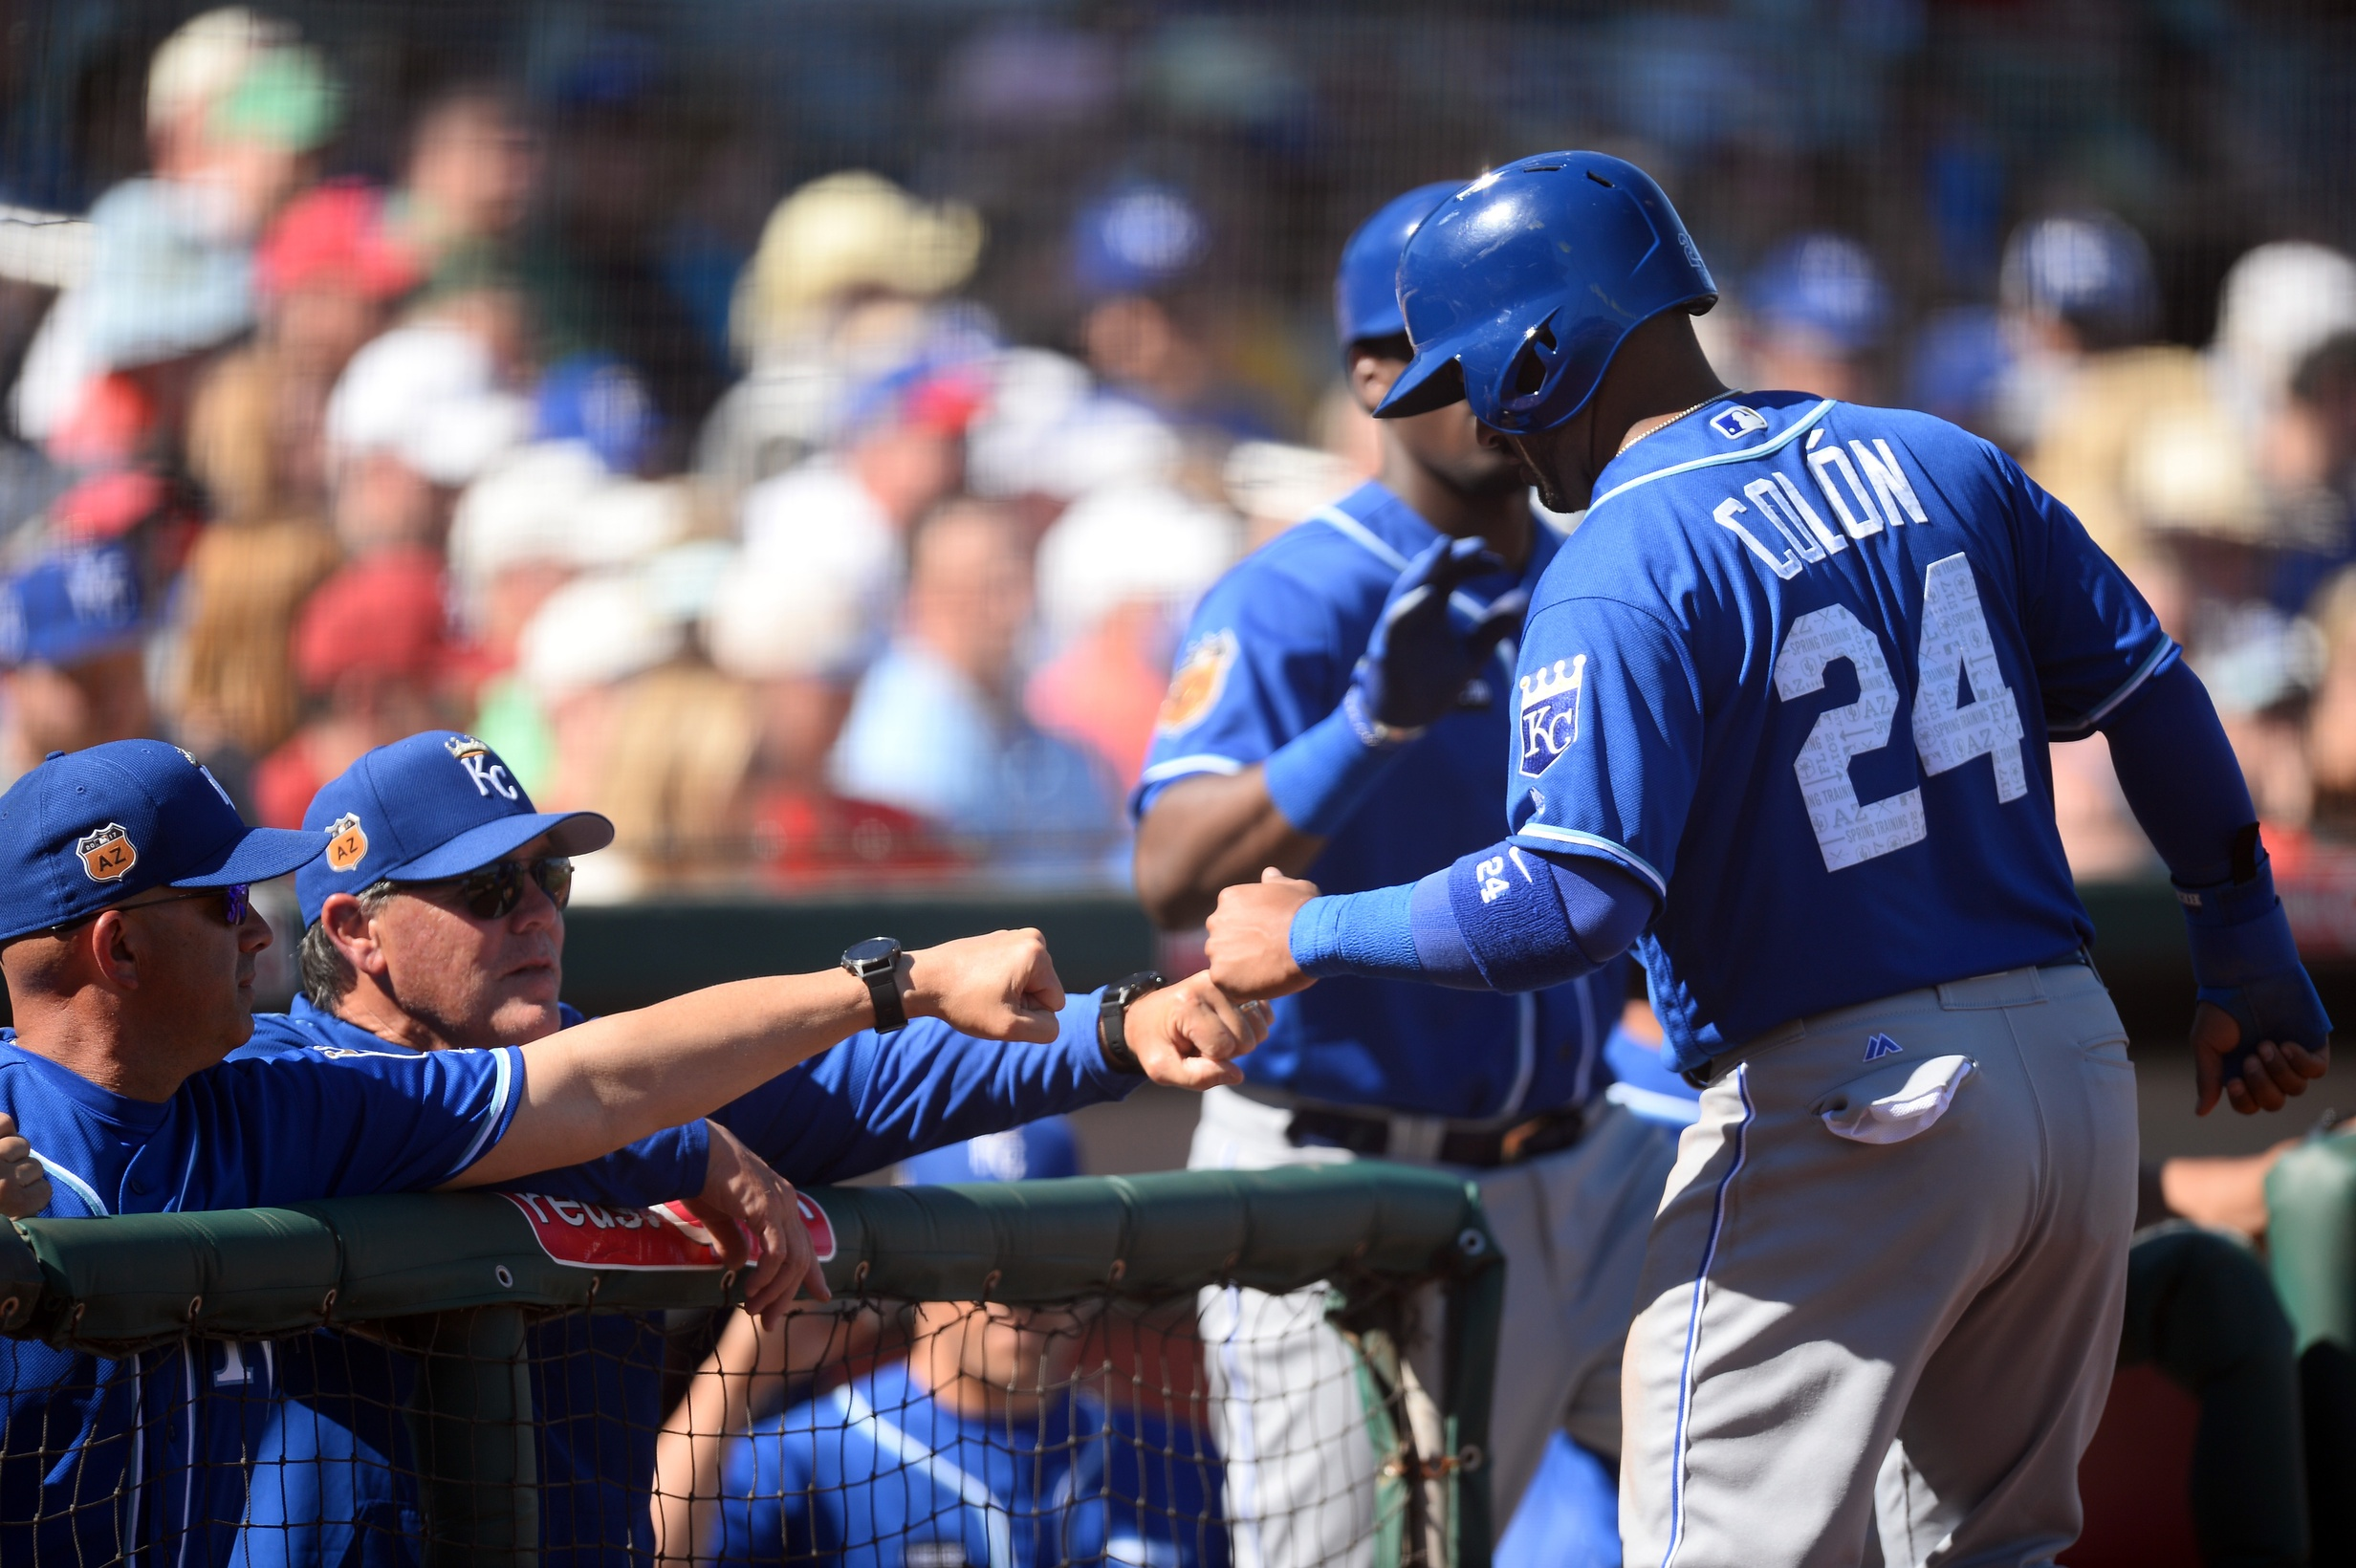 Mar 11, 2017; Goodyear, AZ, USA; Kansas City Royals second baseman Christian Colon (24) fist pounds Kansas City Royals manager Ned Yost (3) after scoring a run against the Cleveland Indians during the fifth inning at Goodyear Ballpark. Mandatory Credit: Joe Camporeale-USA TODAY Sports